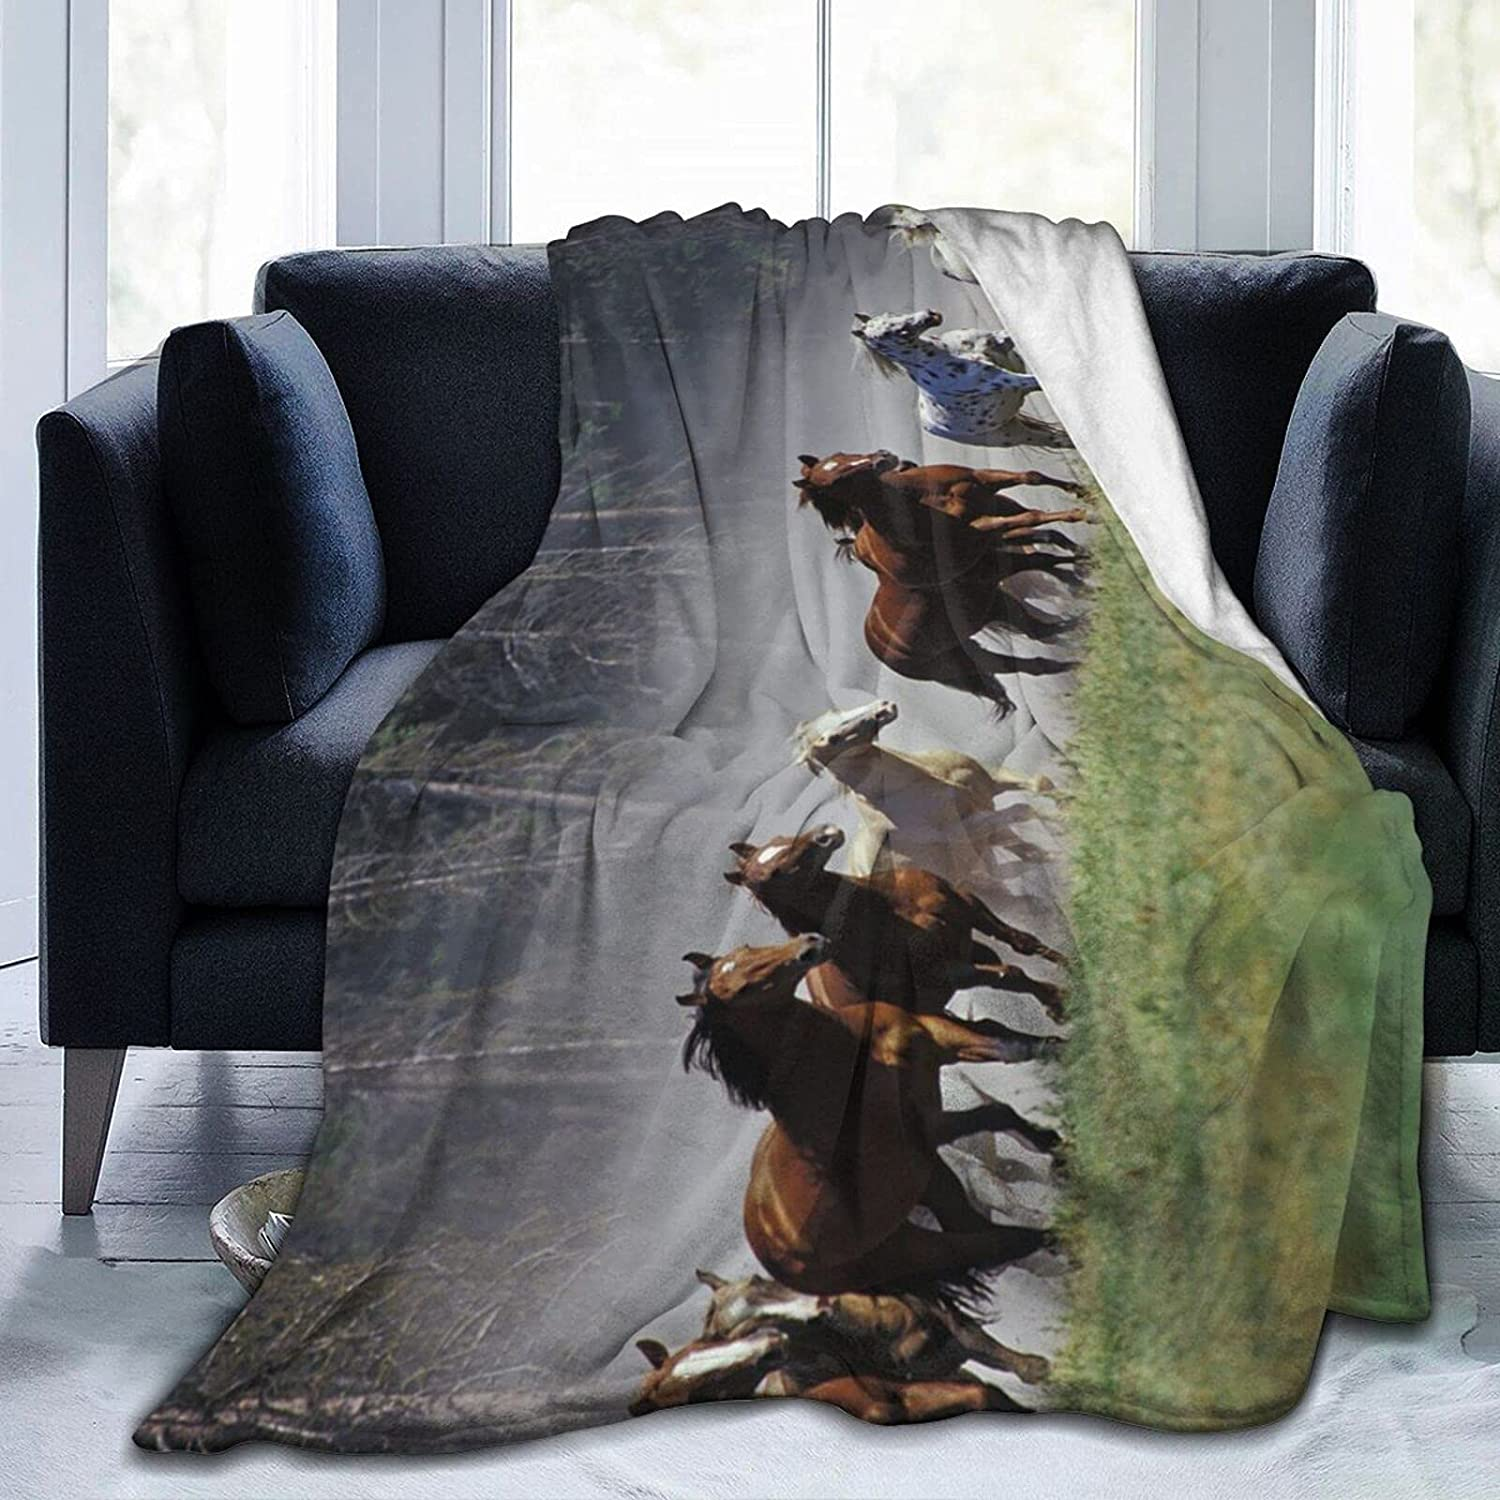 Ranking Popular products integrated 1st place PNNUO Fleece Blankets-Wild Running Plu All-Season Horses Blanket